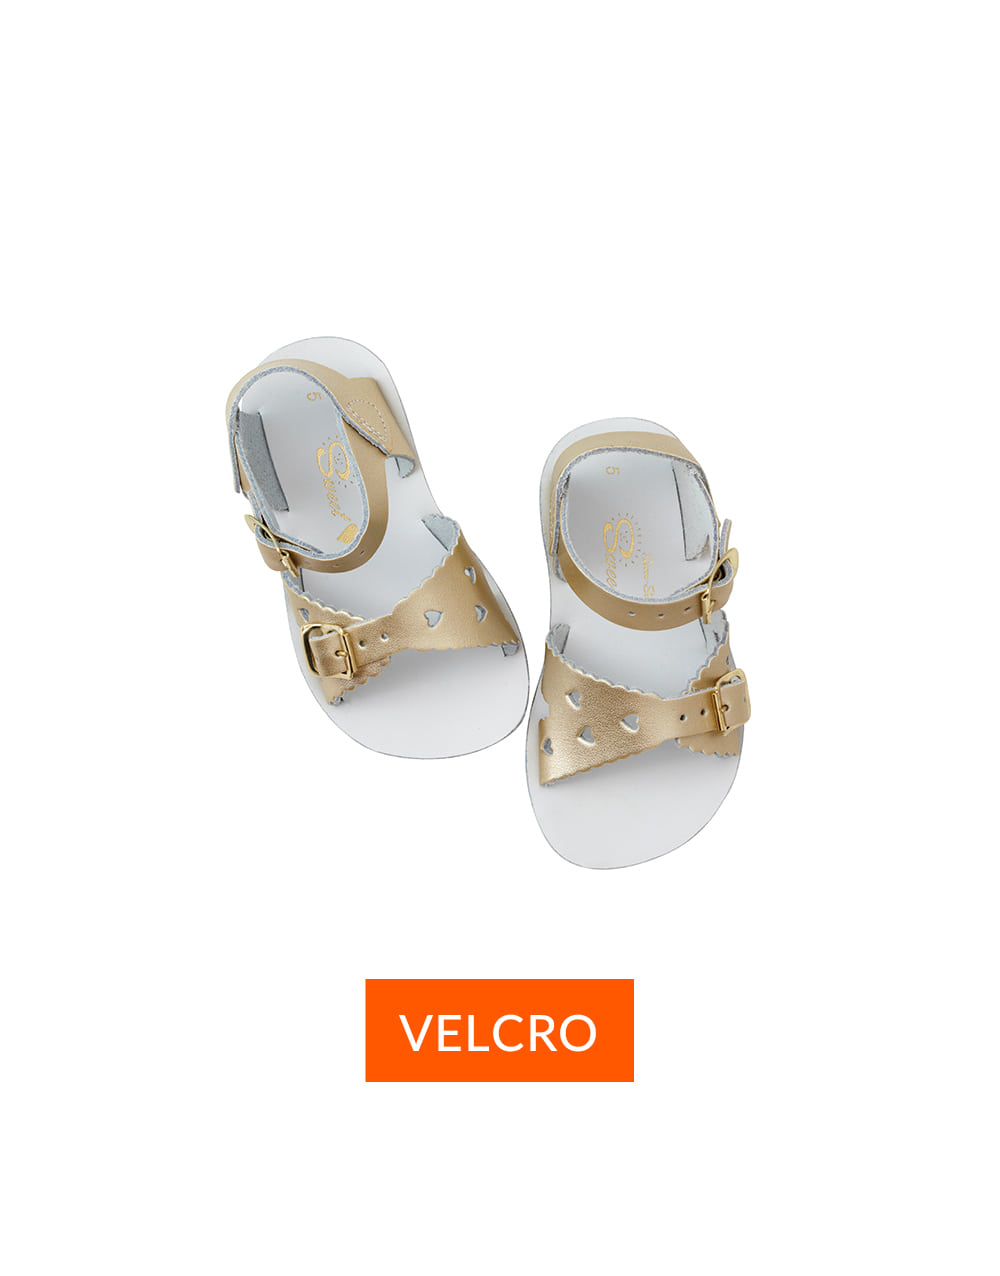 SALT-WATER SANDAL  CHILD VELCRO  SWEETHEART PREMIUM  Gold